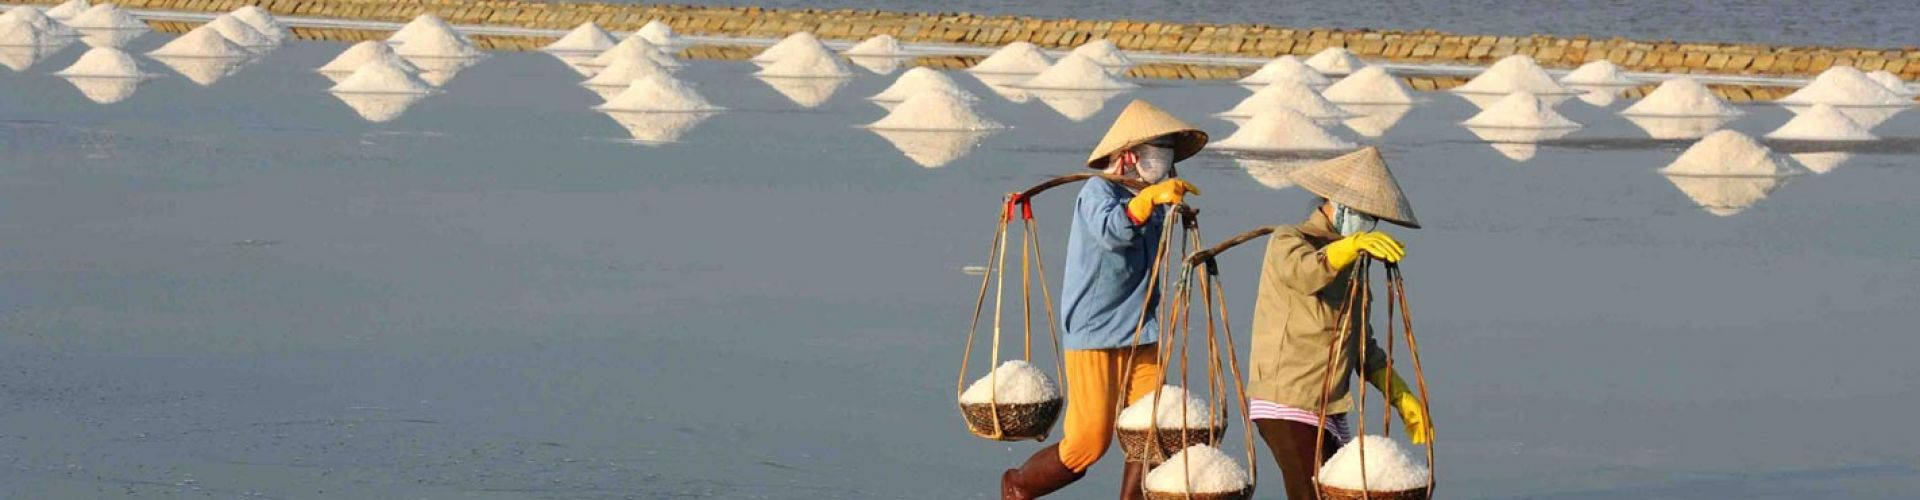 Destinations in Salt Land - Ninh Thuan